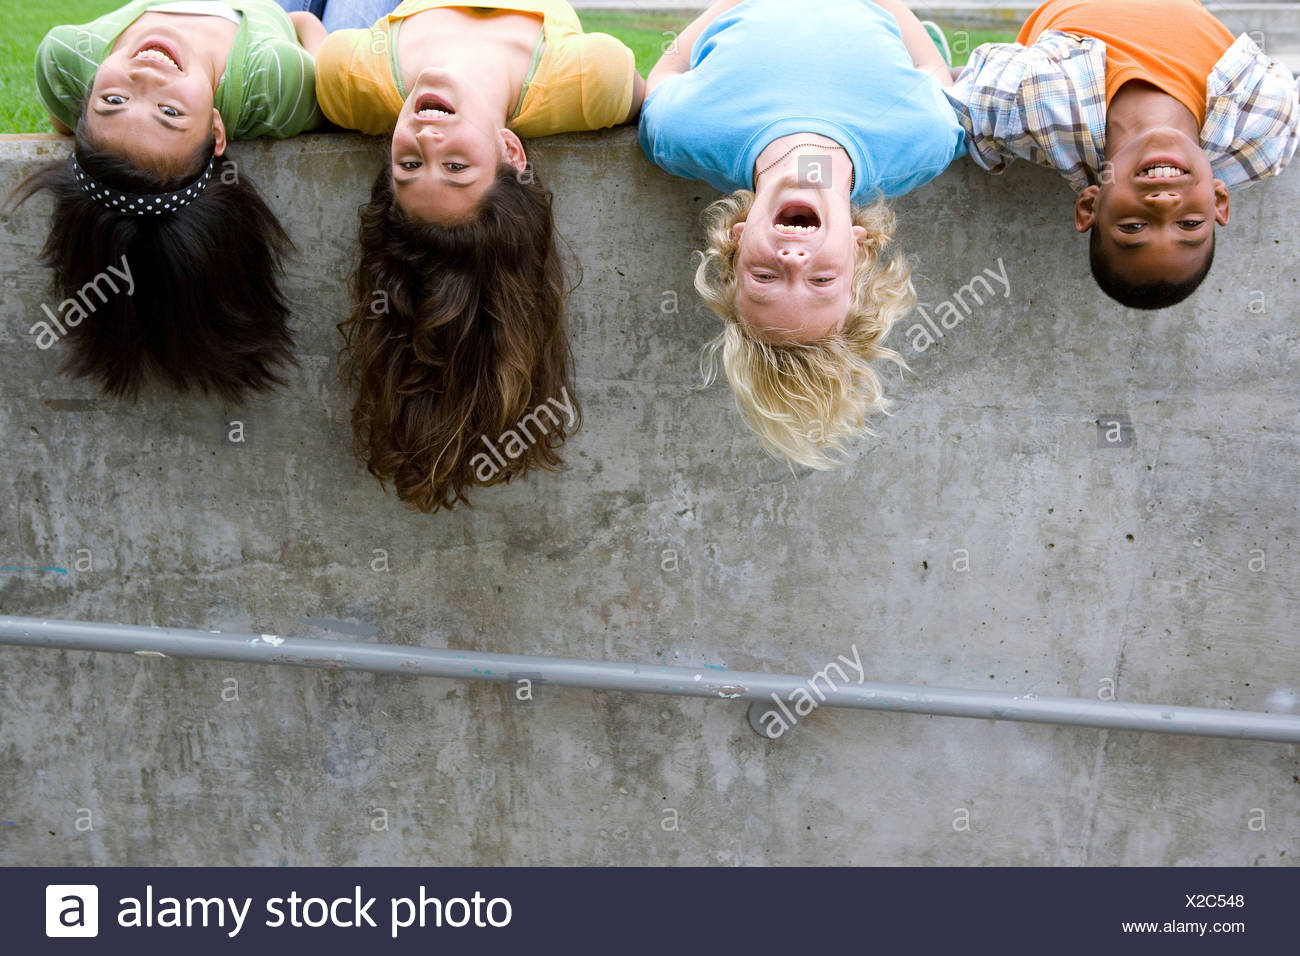 Small group of teenagers (13-15) hanging heads upside down off wall, portrait - Stock Image